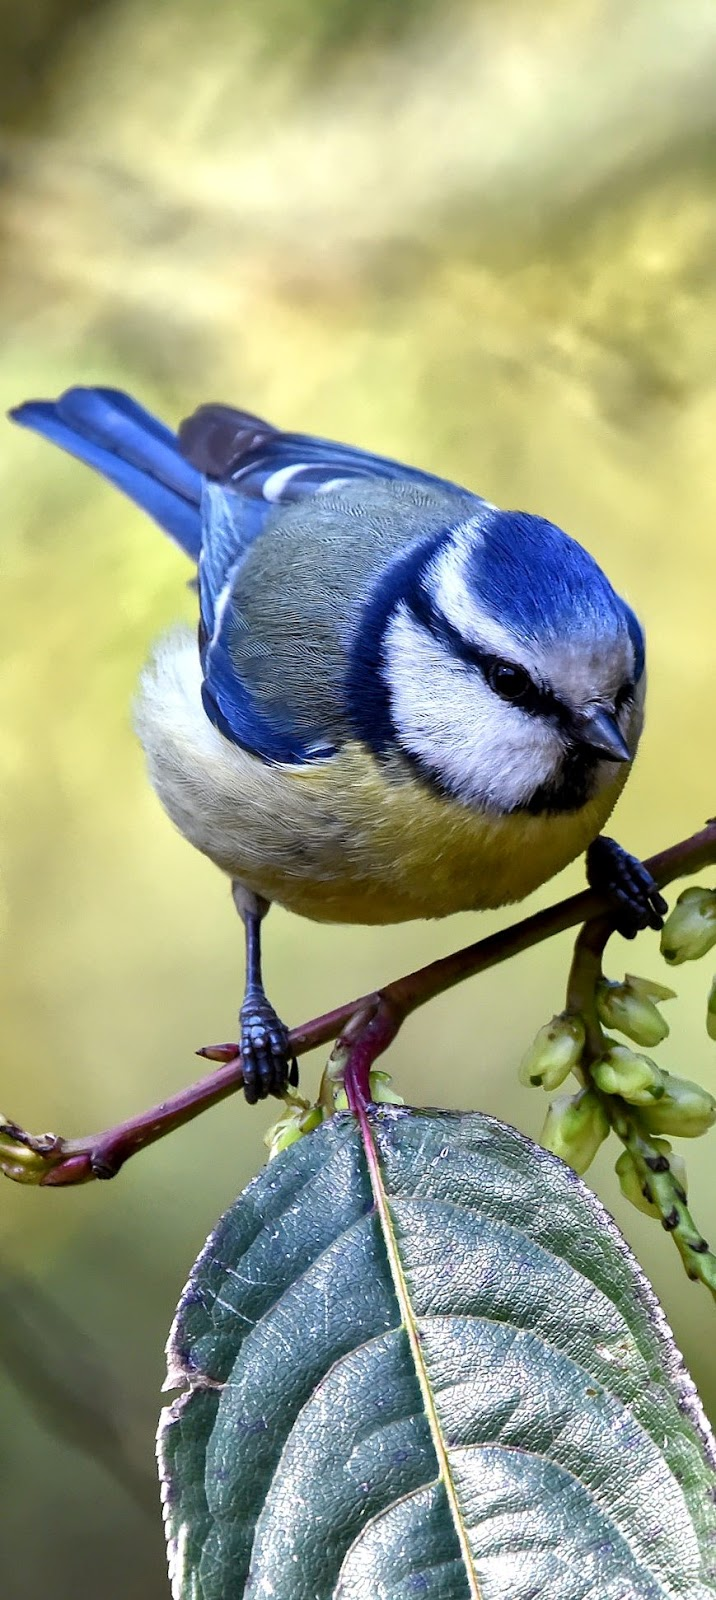 A beautiful blue tit.